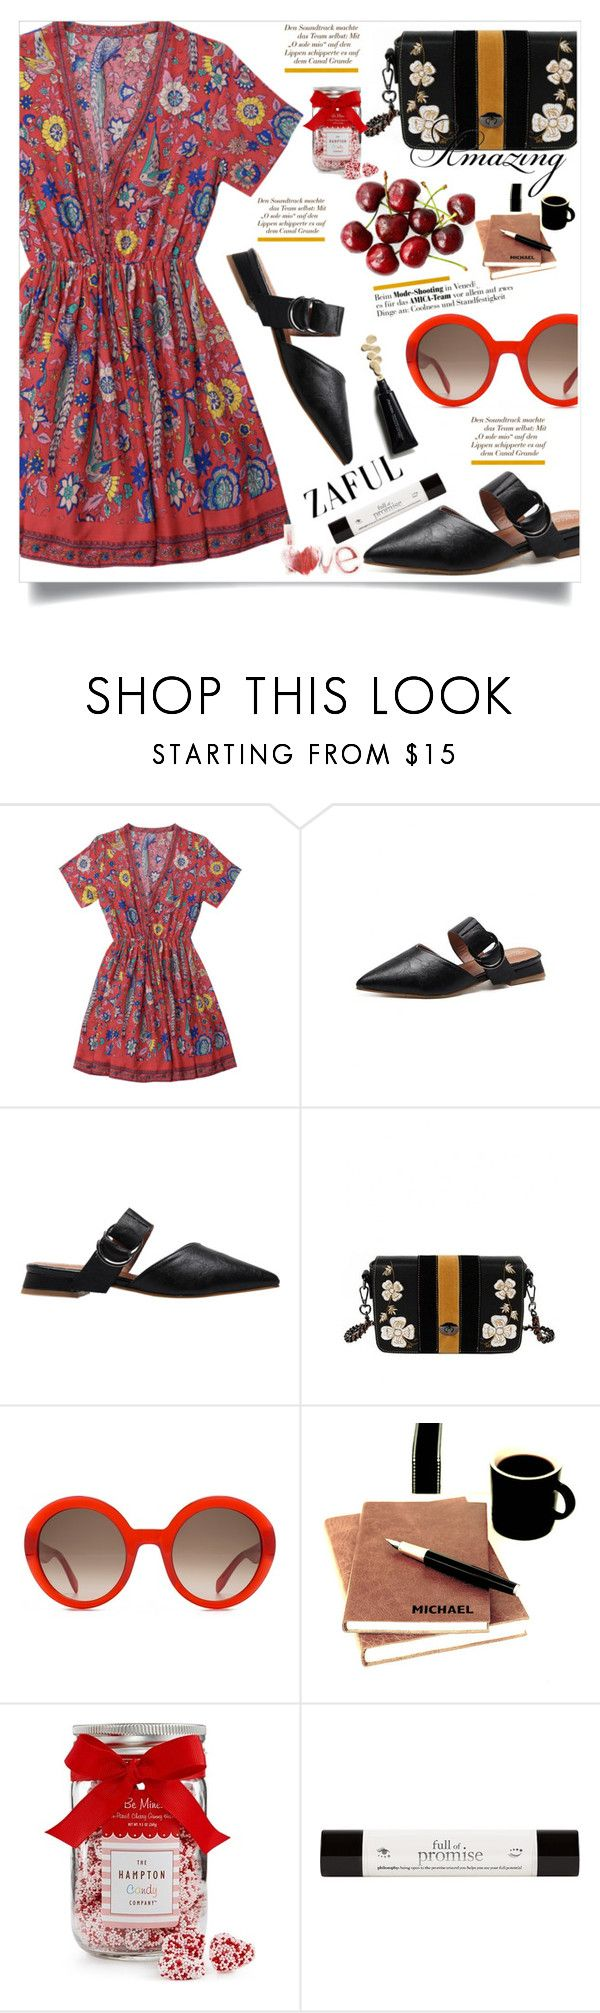 """""""Zaful 50"""" by lillili25 ❤ liked on Polyvore featuring Alexander McQueen, Champion, The Hampton Popcorn Company and philosophy"""